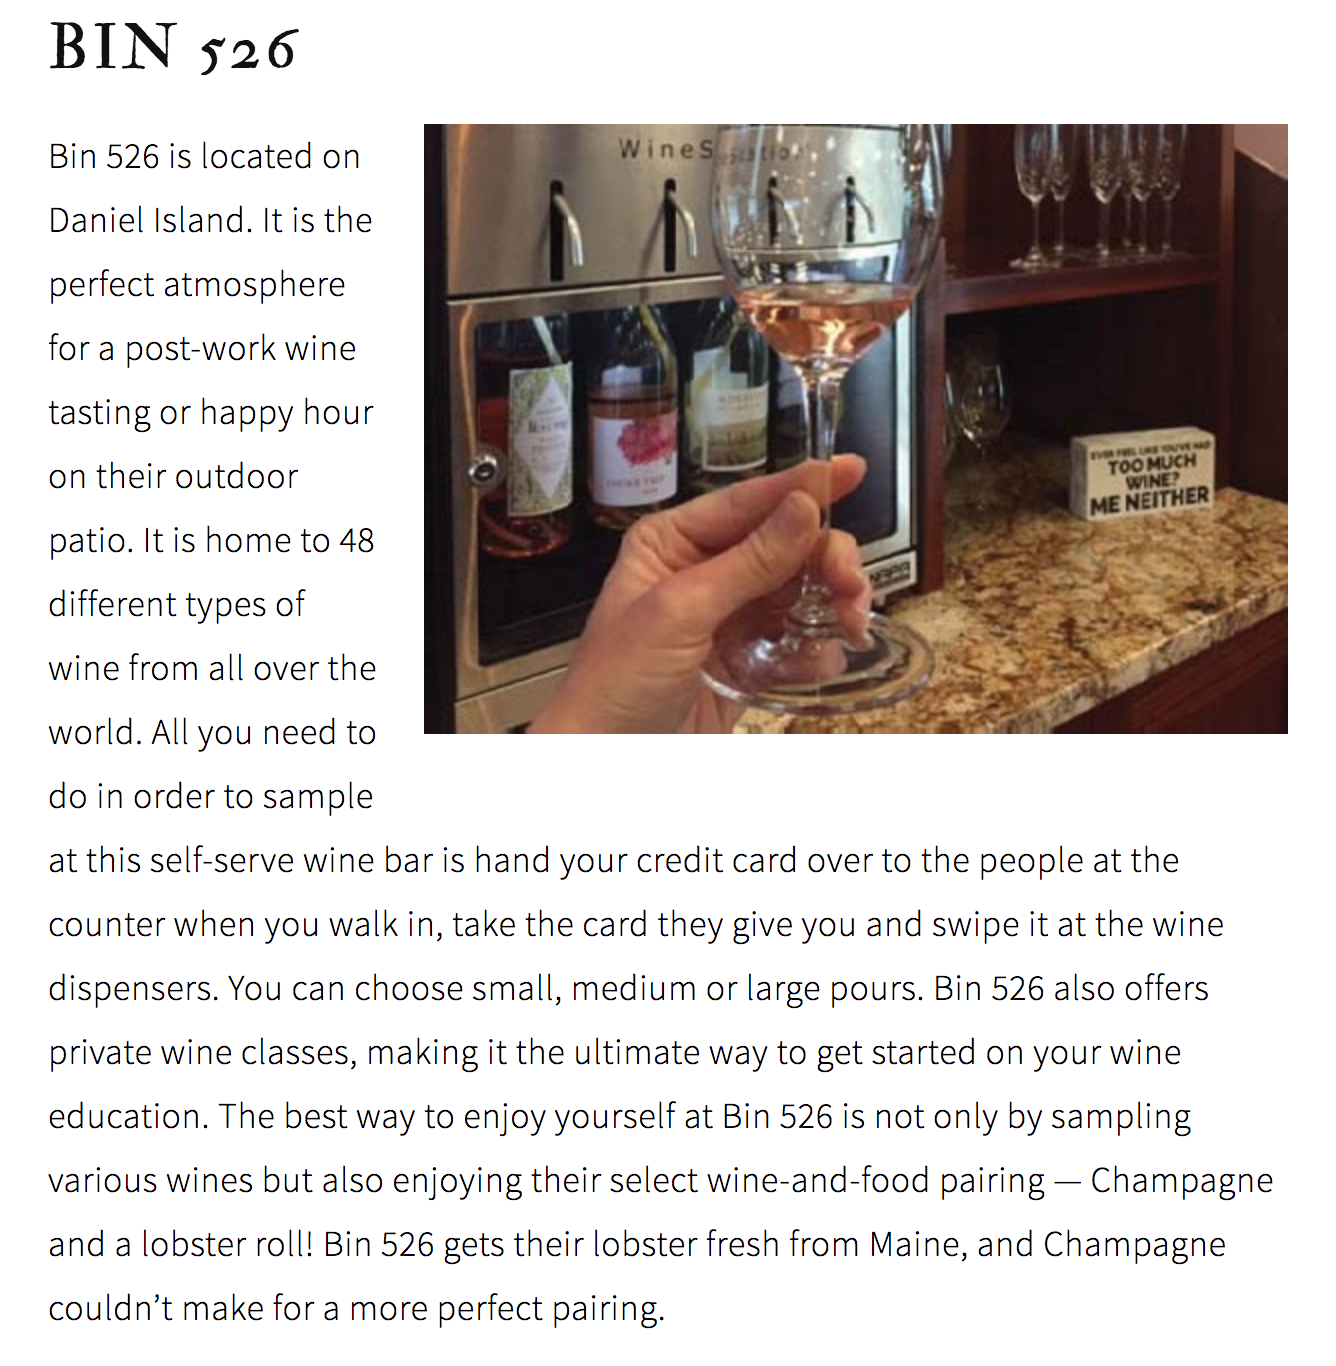 BIN 526  Bin 526 is located on Daniel Island. It is the perfect atmosphere for a post-work wine tasting or happy hour on their outdoor patio. It is home to 48 different types of wine from all over the world. All you need to do in order to sample at this self-serve wine bar is hand your credit card over to the people at the counter when you walk in, take the card they give you and swipe it at the wine dispensers. You can choose small, medium or large pours. Bin 526 also offers private wine classes, making it the ultimate way to get started on your wine education. The best way to enjoy yourself at Bin 526 is not only by sampling various wines but also enjoying their select wine-and-food pairing — Champagne and a lobster roll! Bin 526 gets their lobster fresh from Maine, and Champagne couldn't make for a more perfect pairing.